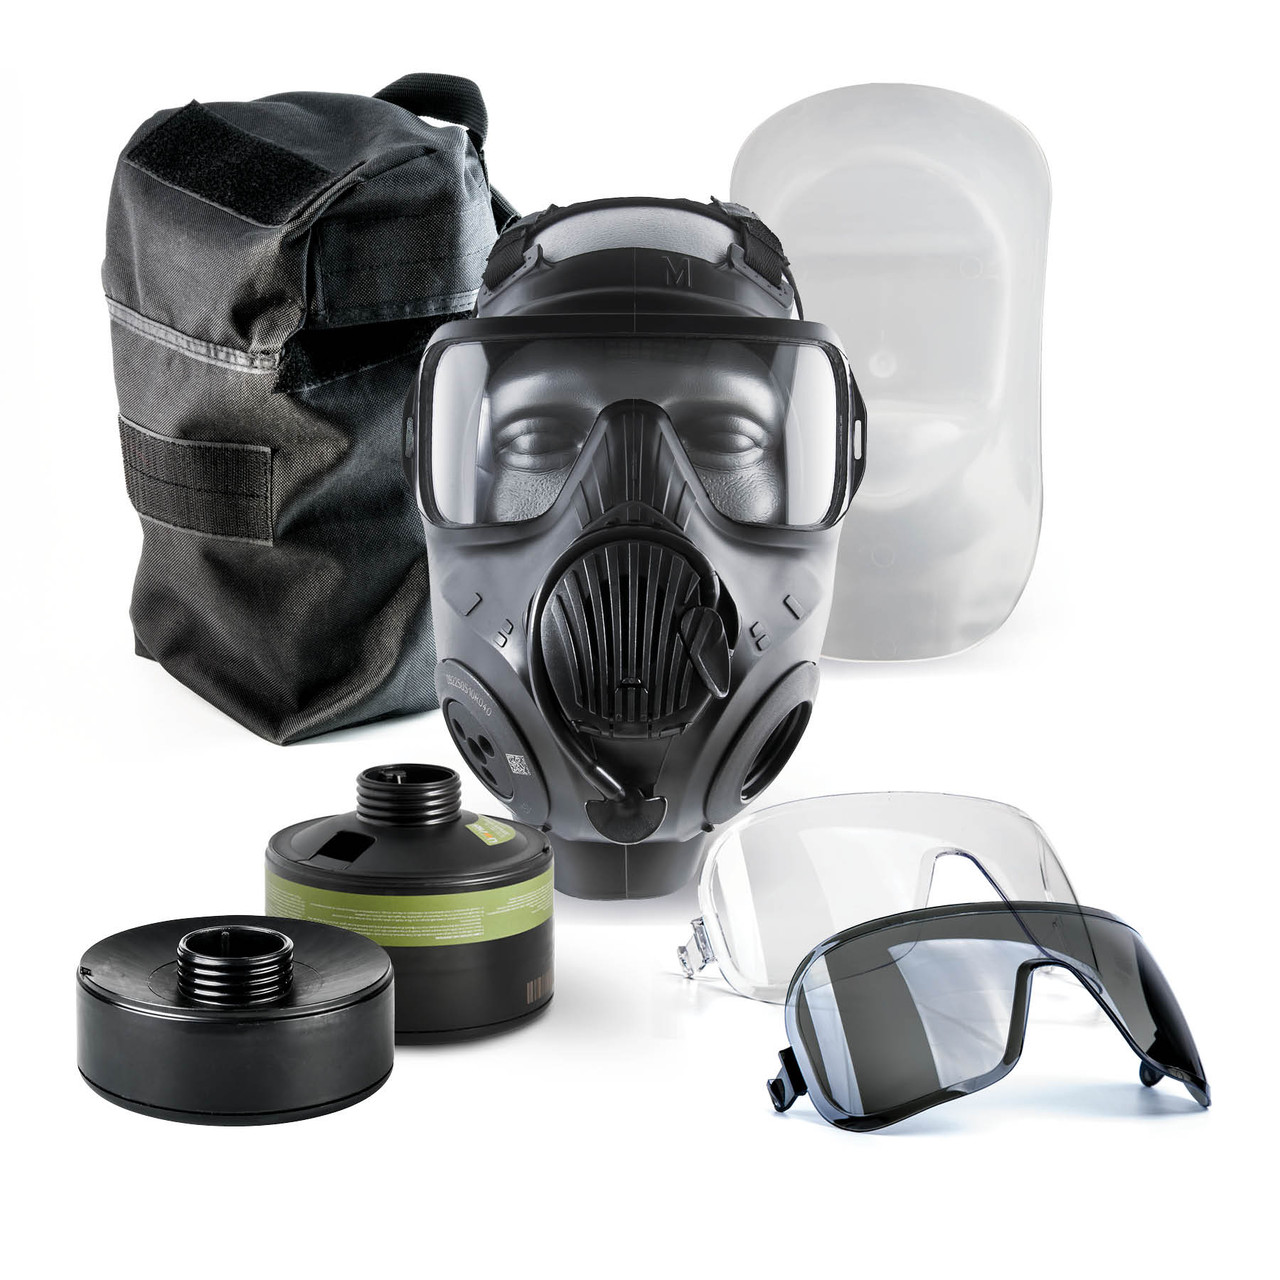 Avon Protection C50 (APR) Air Purifying Respirator First Responder Kit, includes  mask, two filter types, two outserts, and a carrier